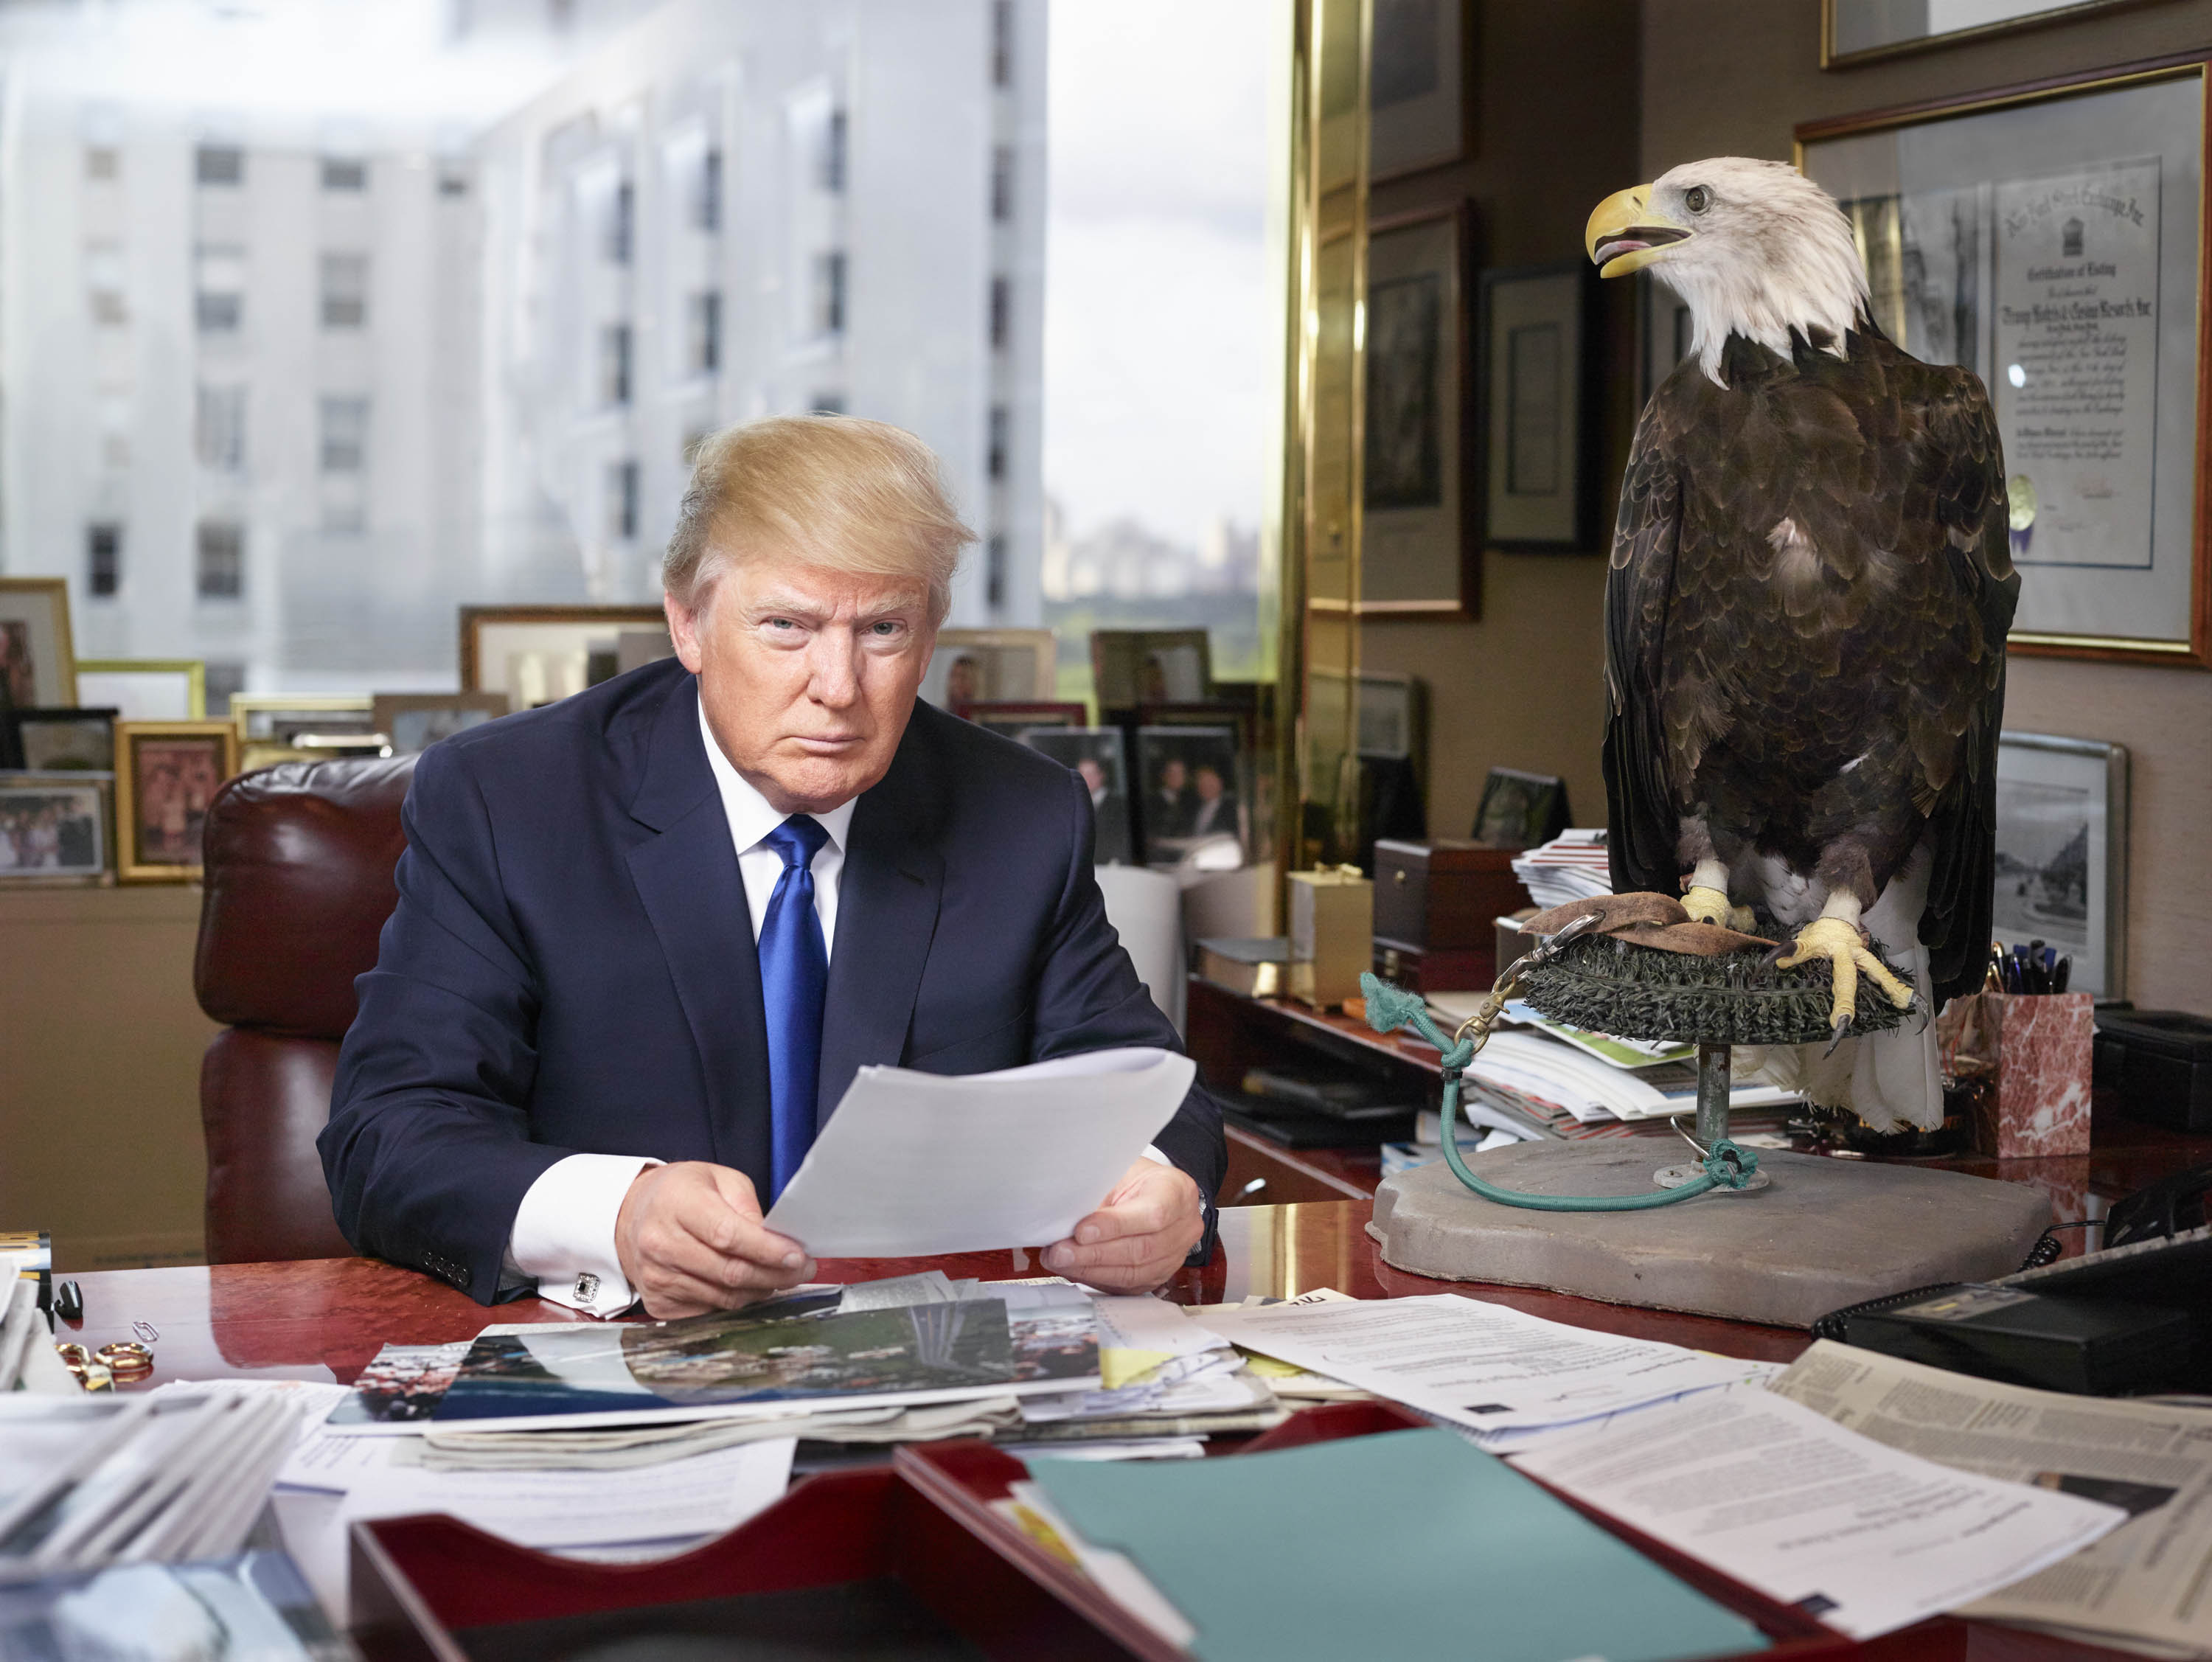 The Republican front runner in his corner office on the 25th floor of Trump Tower in New York City, photographed with a bald eagle named Uncle Sam.